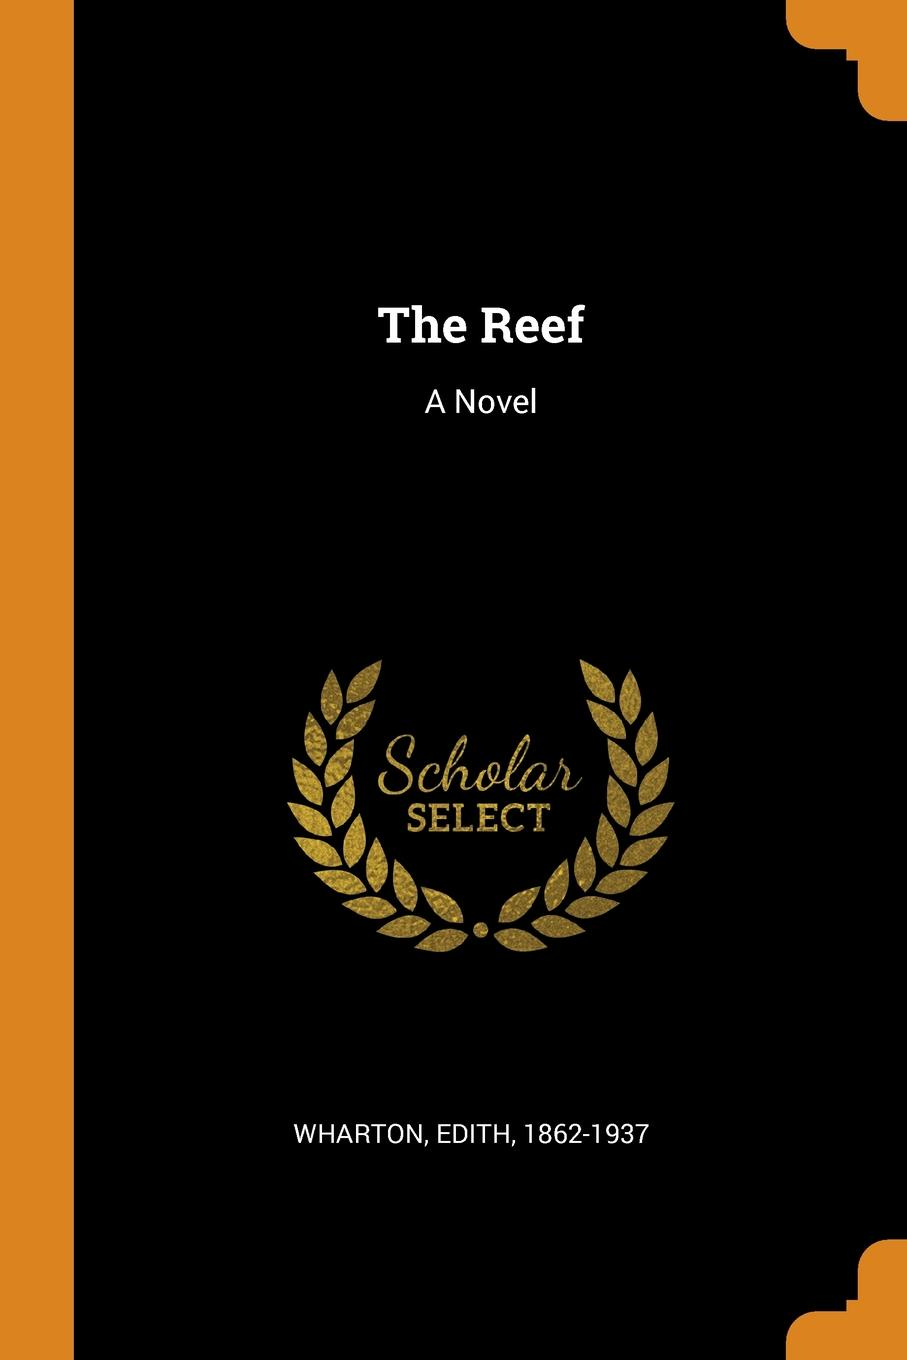 Wharton Edith 1862-1937 The Reef. A Novel